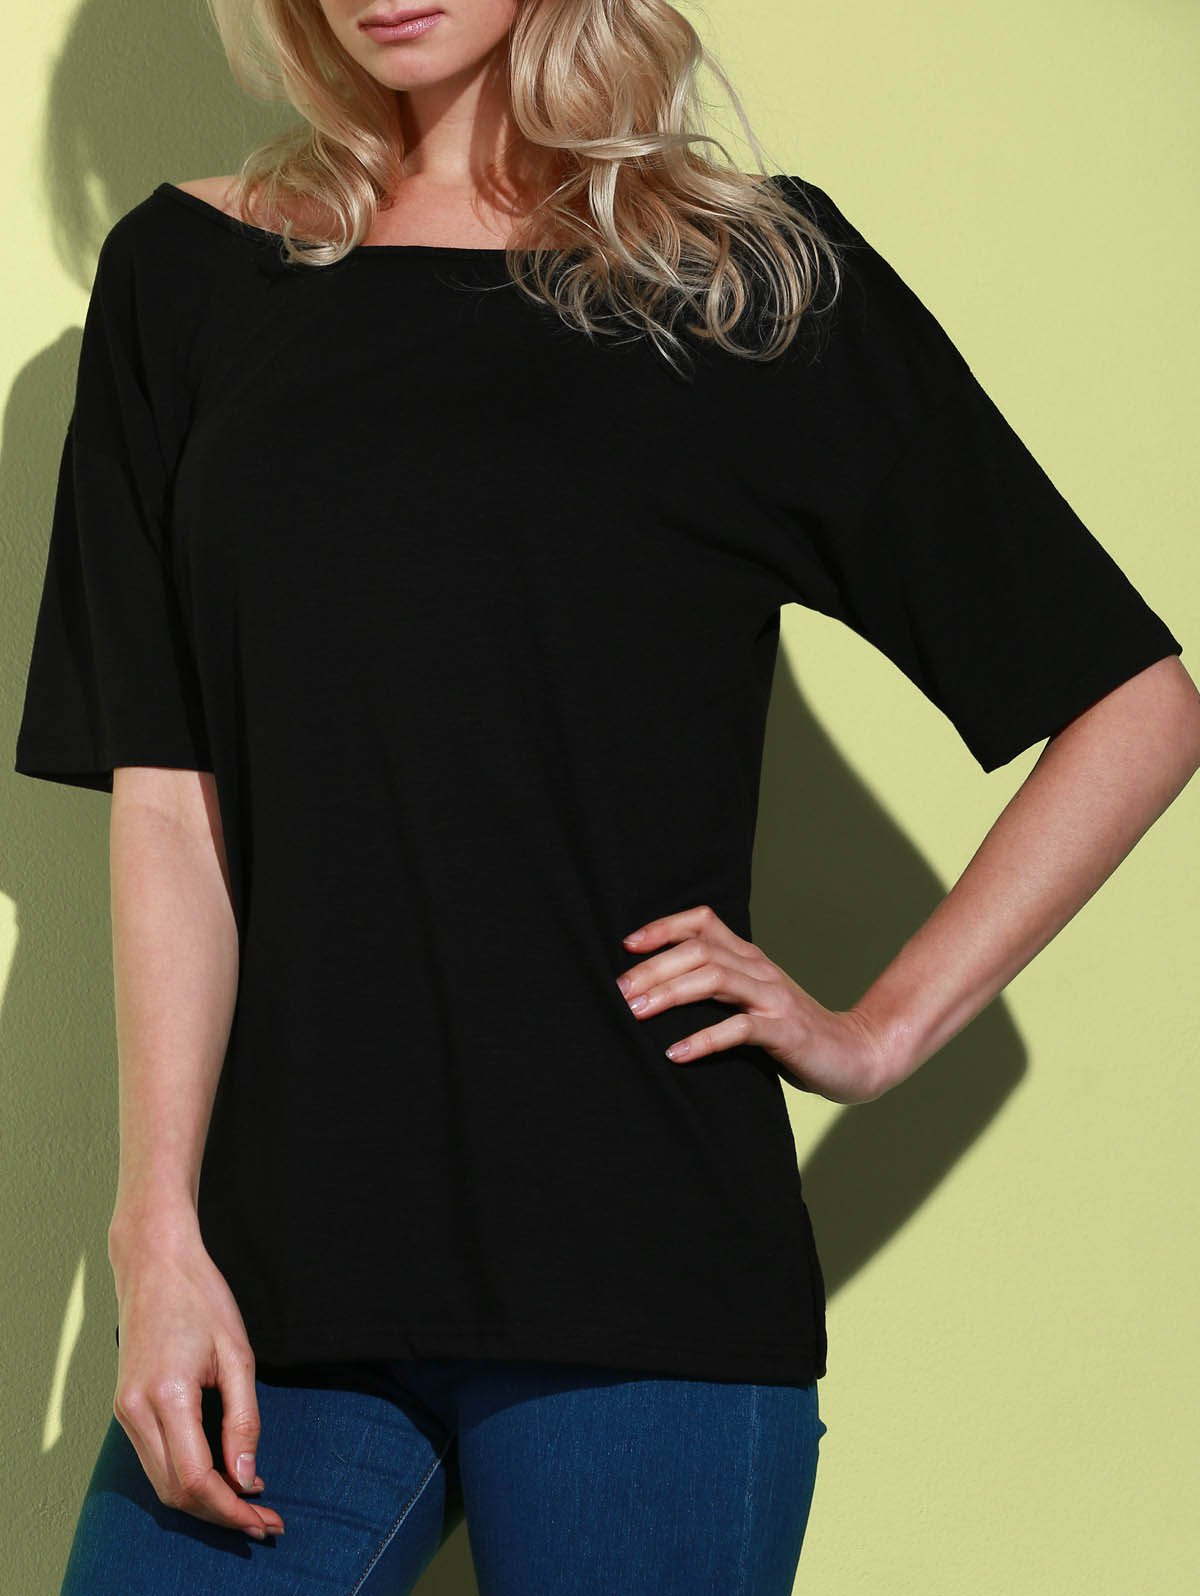 Shops Casual 1/2 Sleeve Loose-Fitting Solid Color T-Shirt For Women